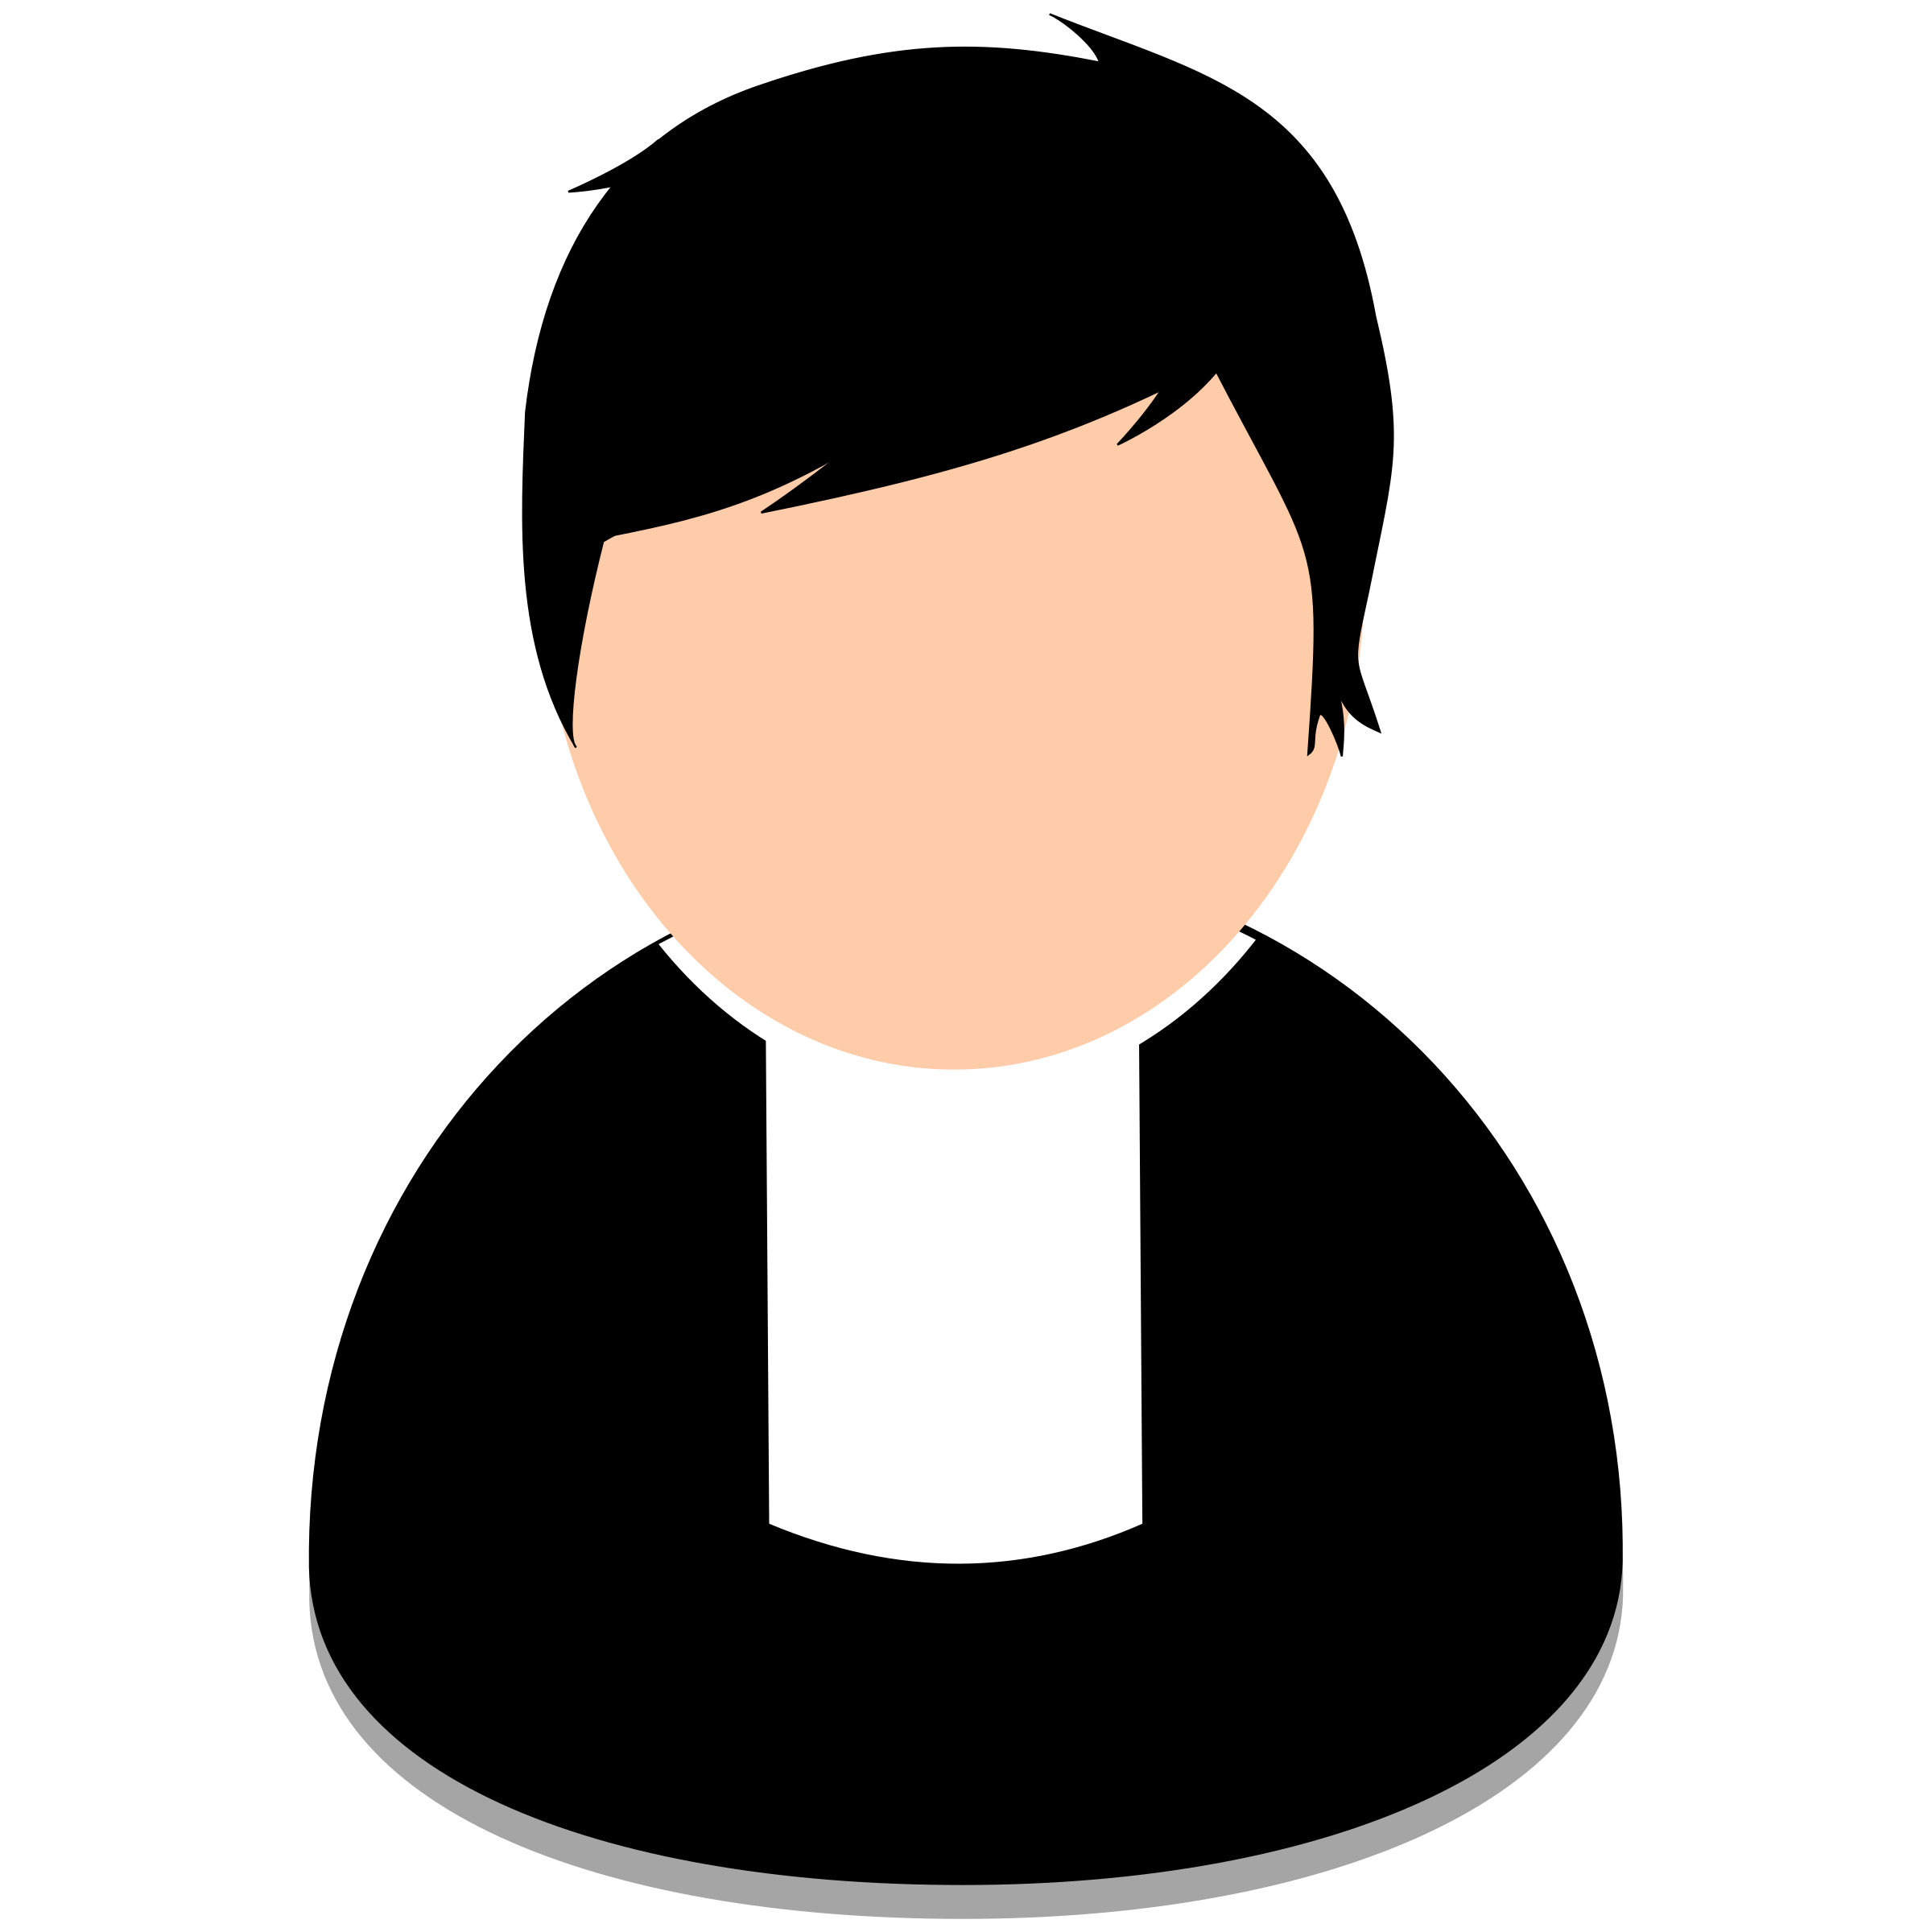 Pastor clipart irate. Avatar big image png